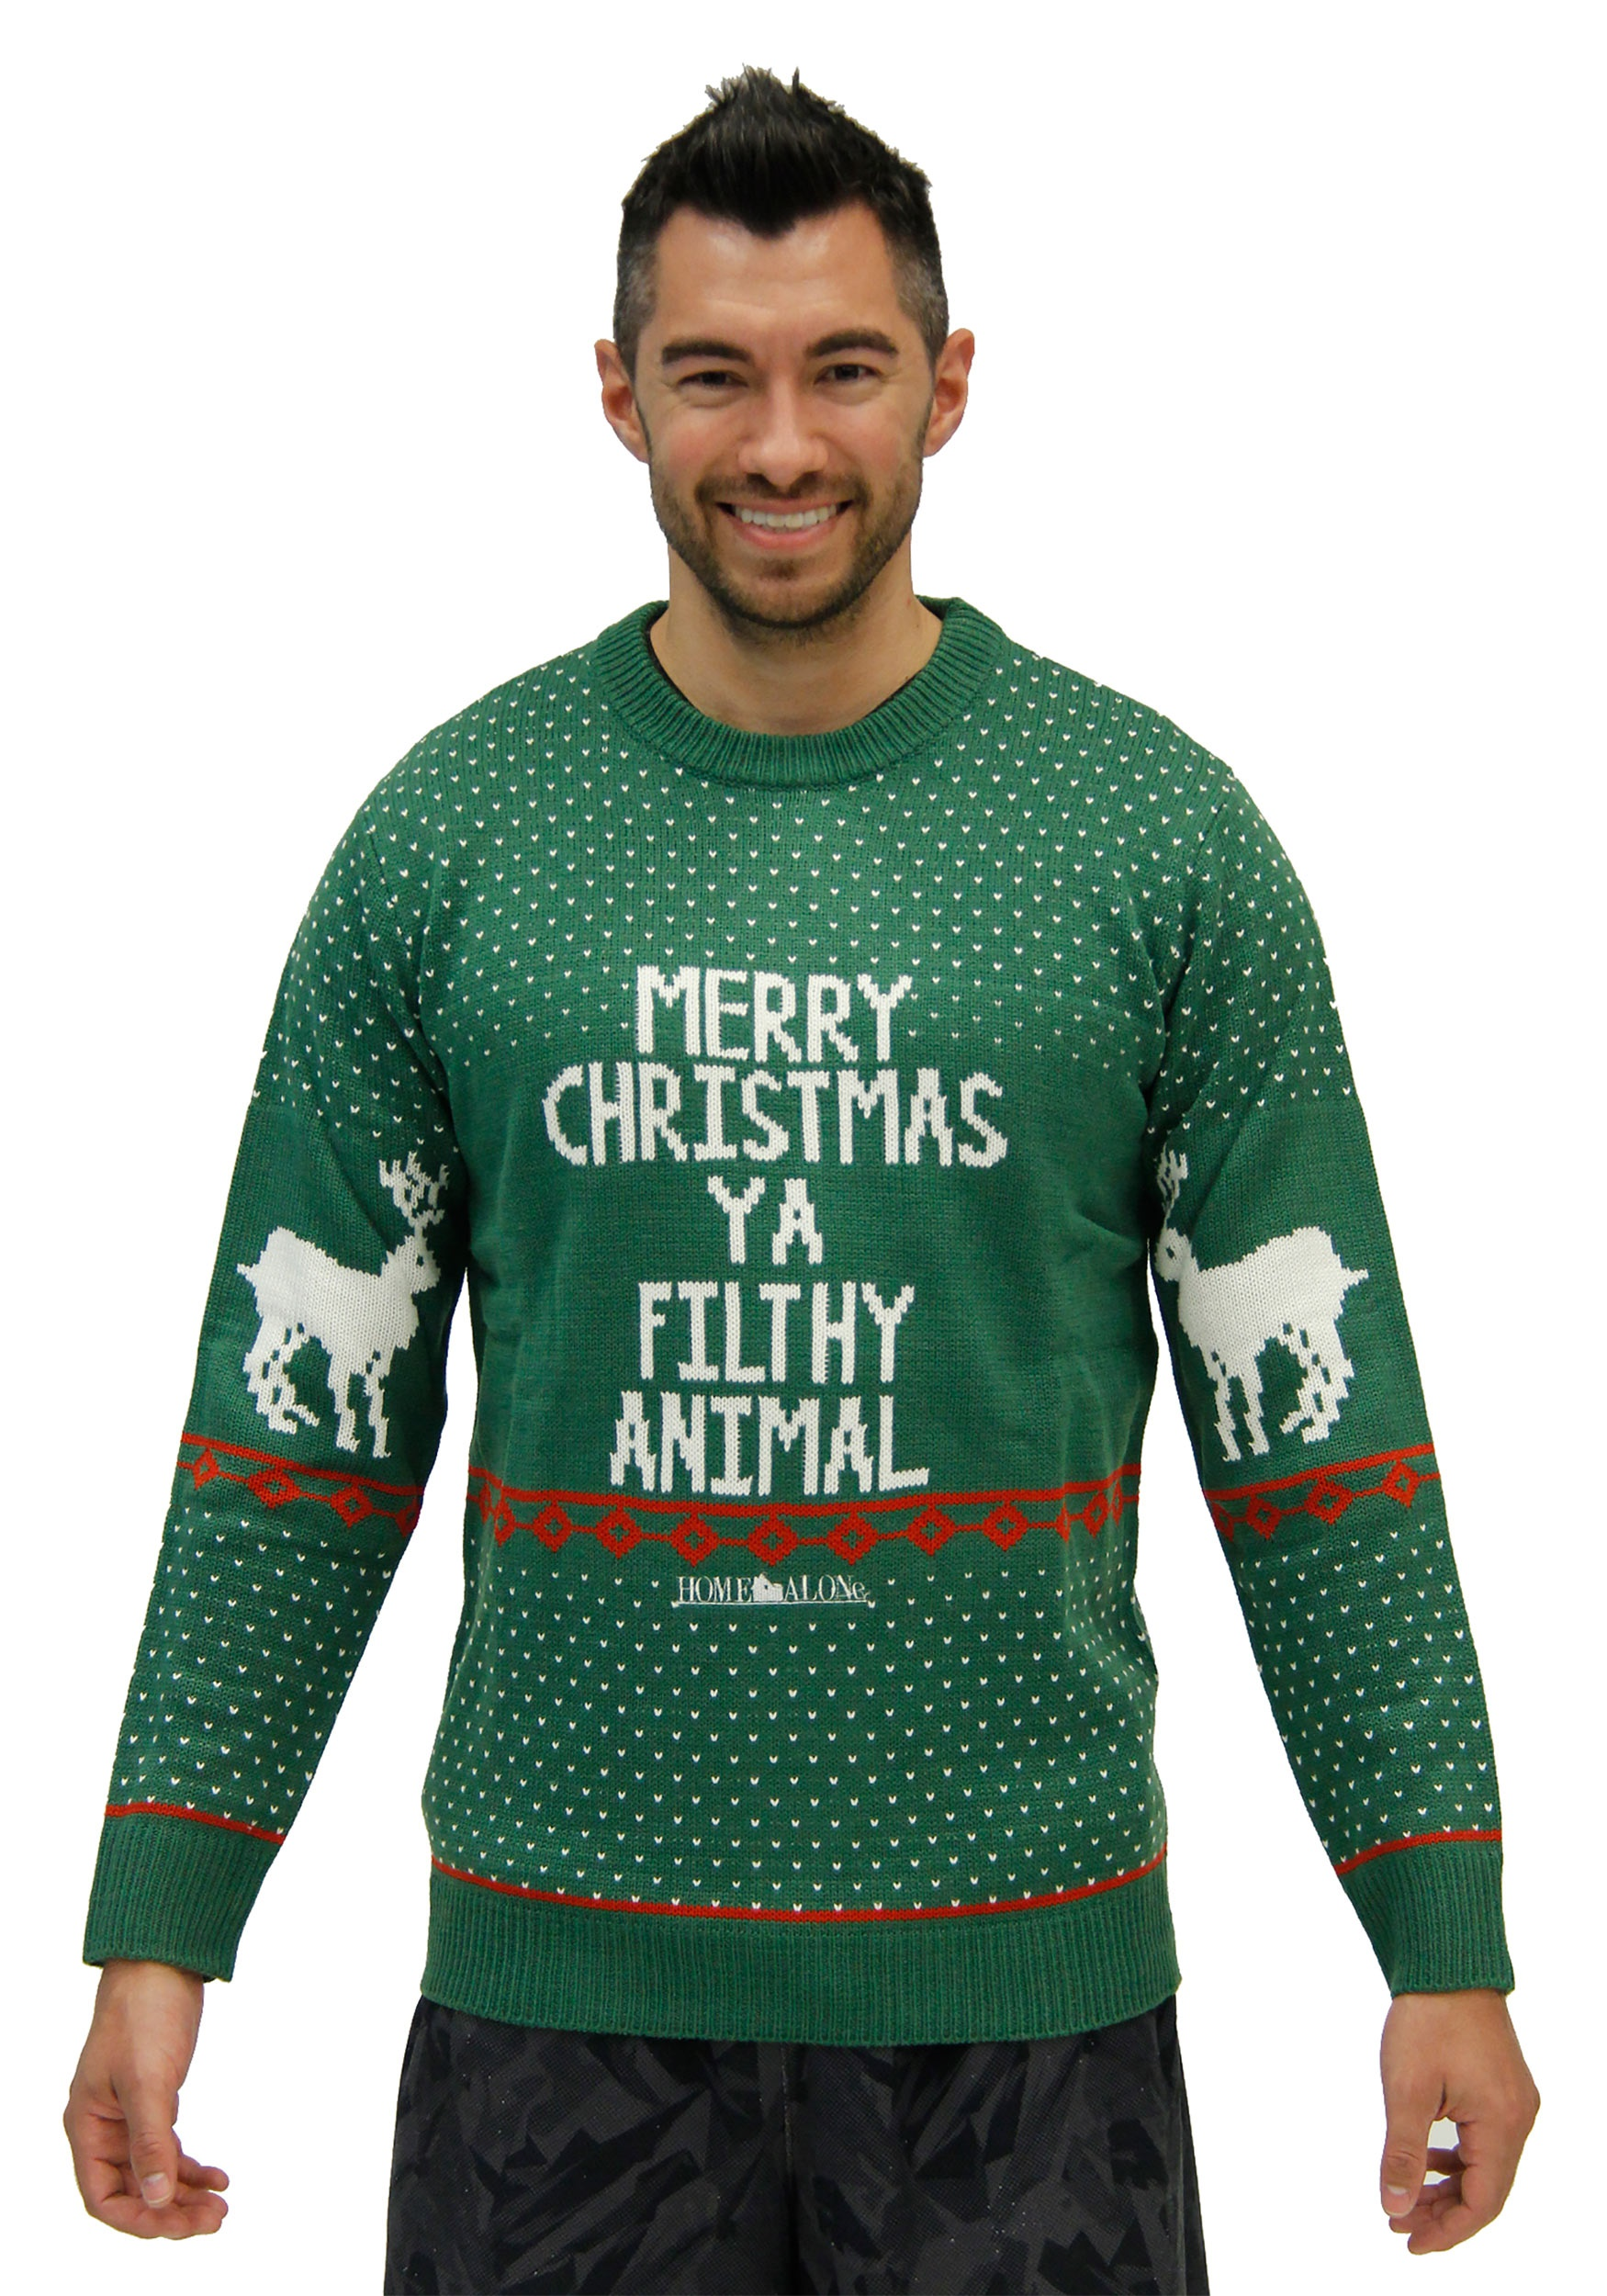 Home Alone Green Merry Christmas Ya Filthy Animal Ugly X Mas Sweater